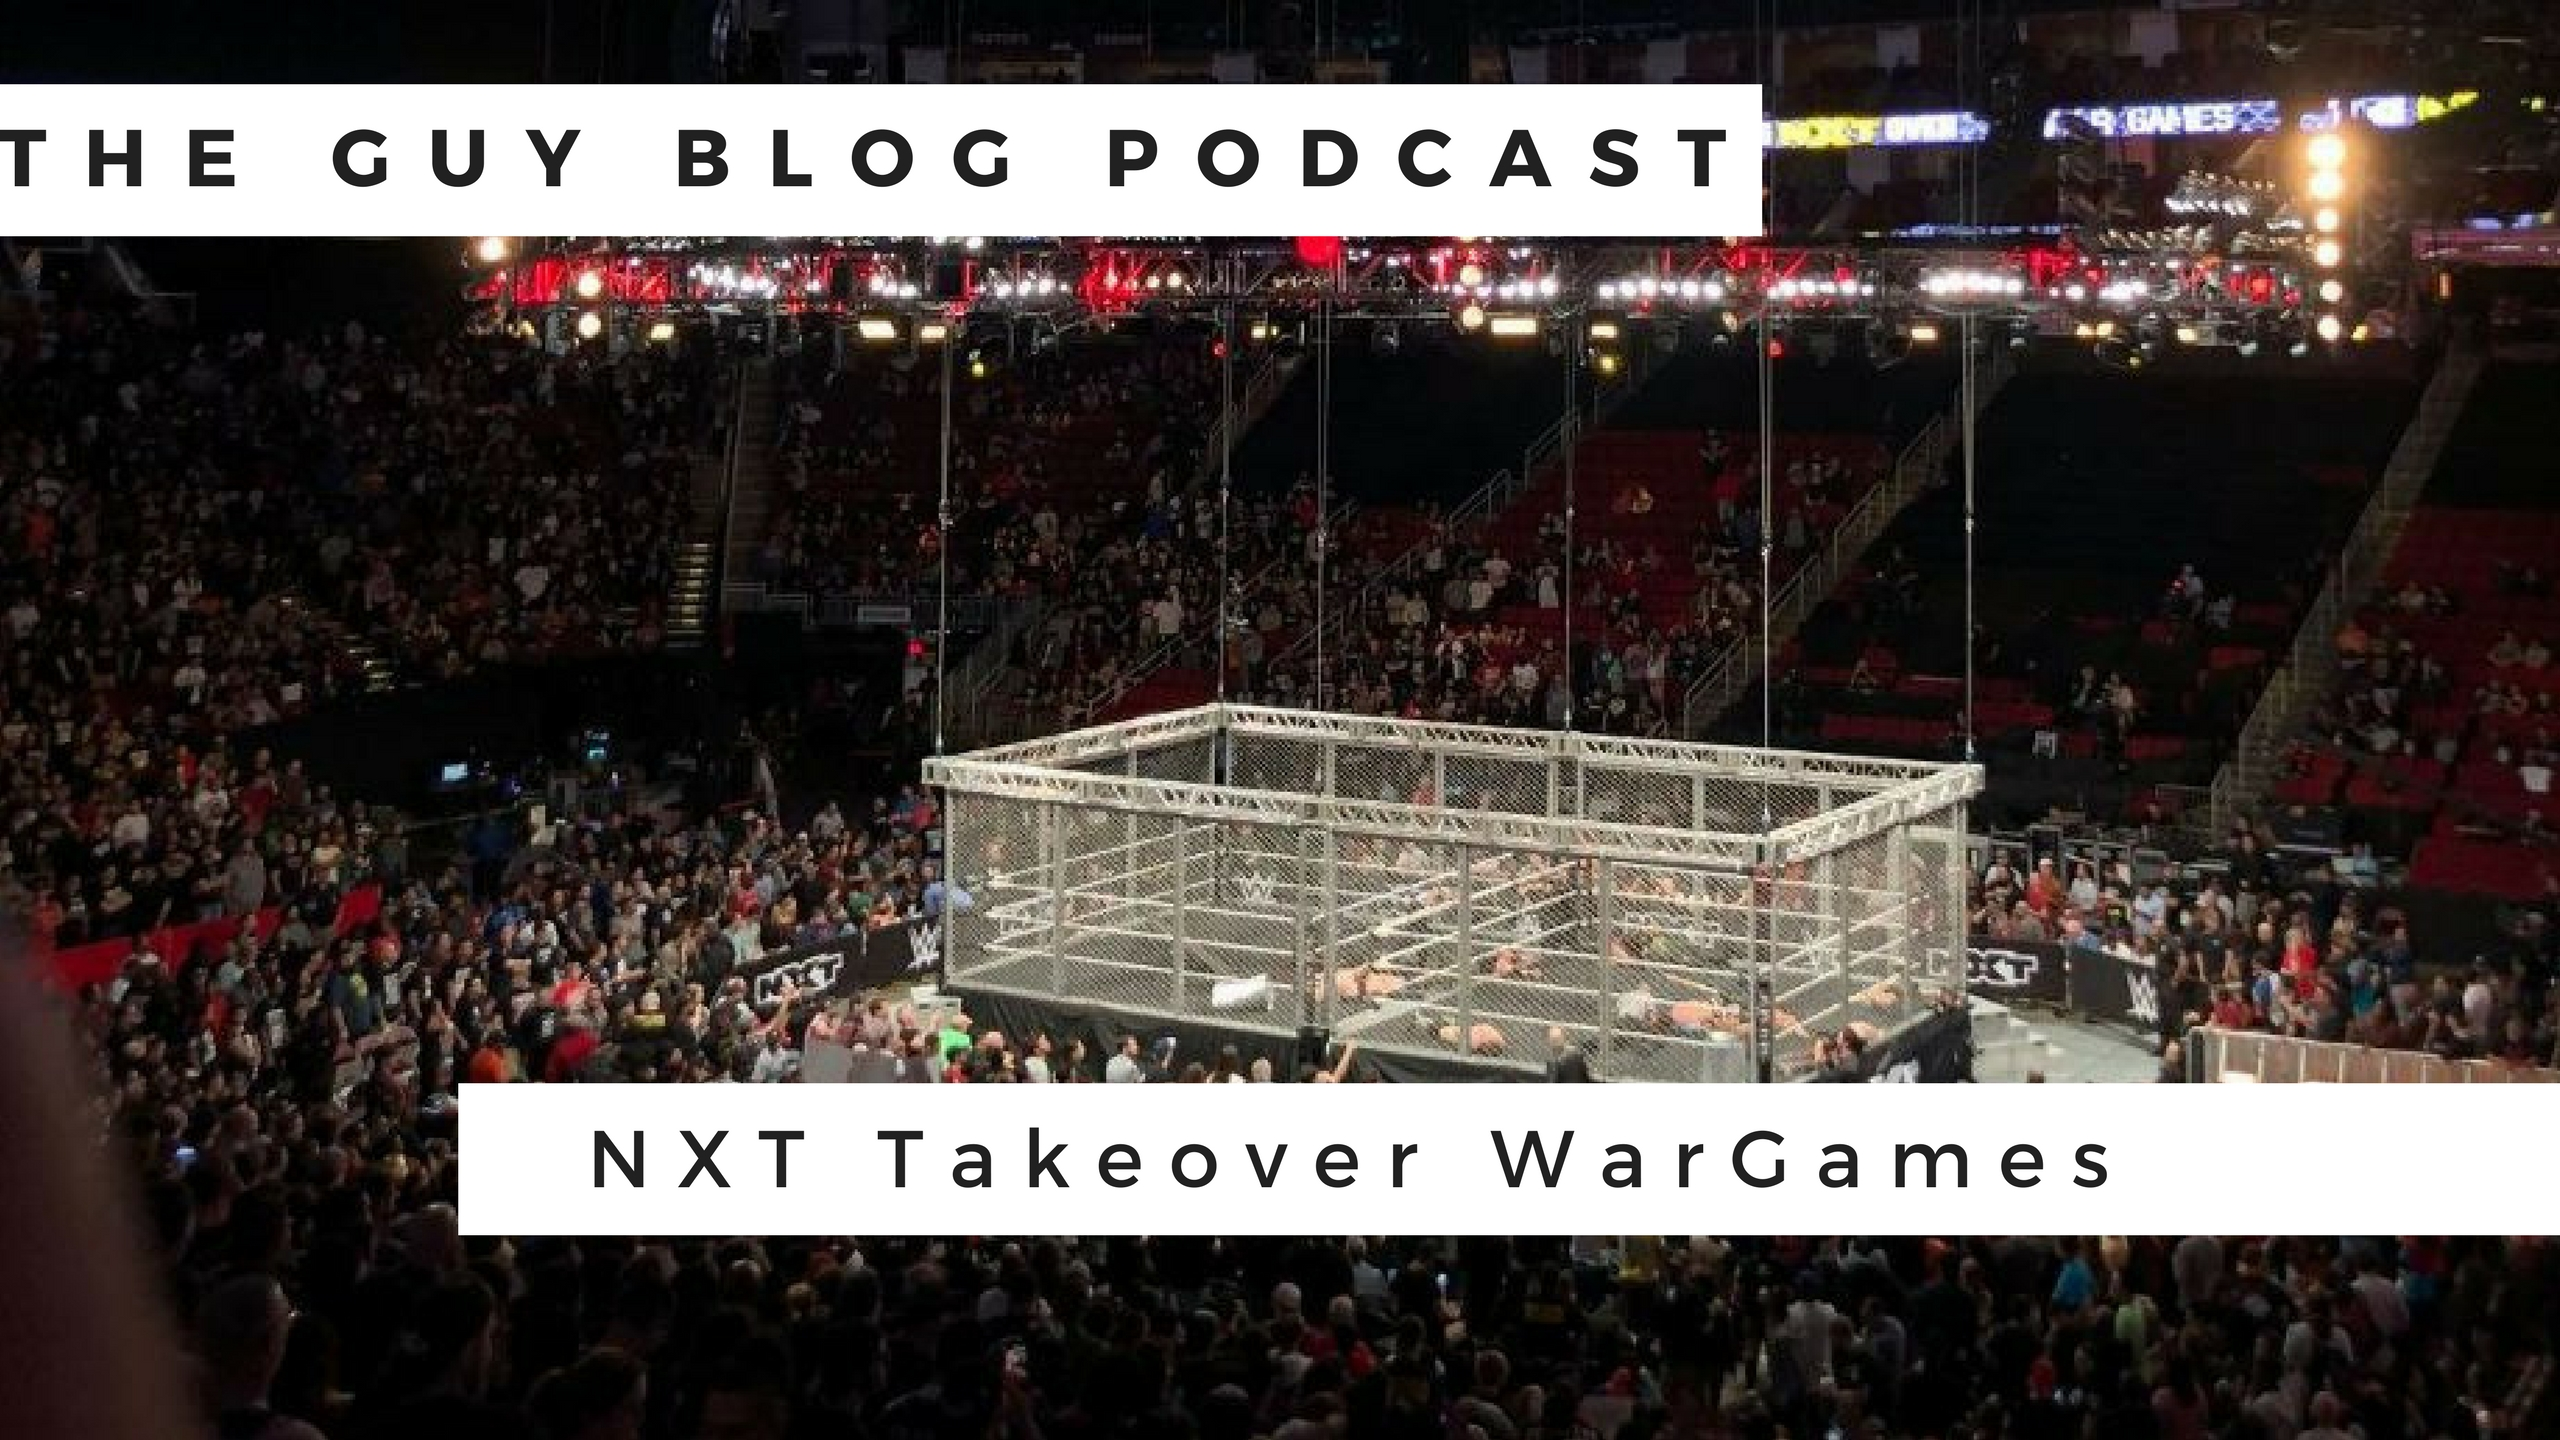 TGBP 049 NXT WarGames: Post Show Review